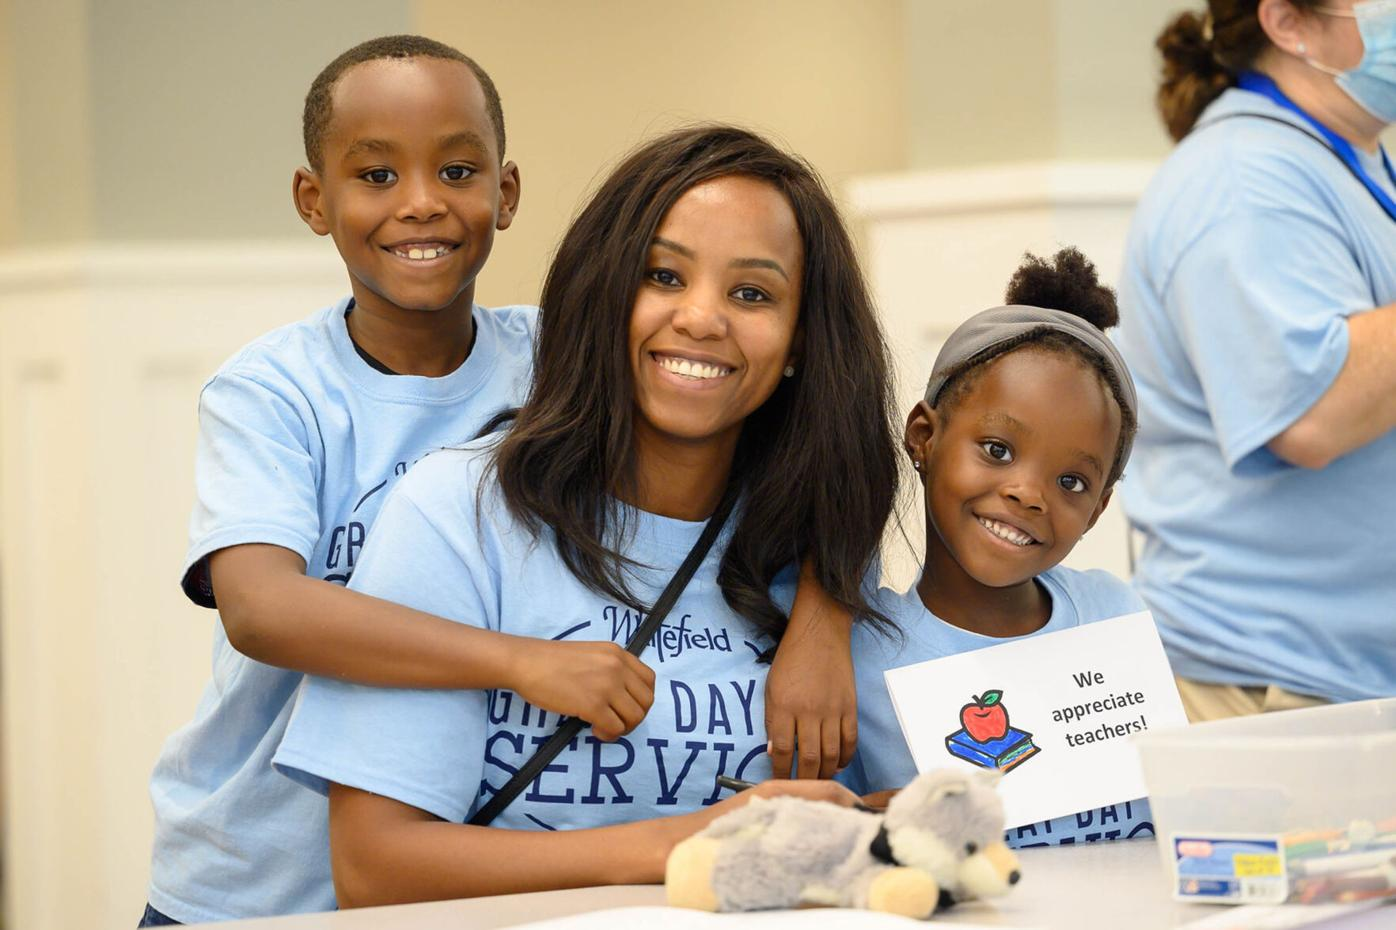 Day of Service